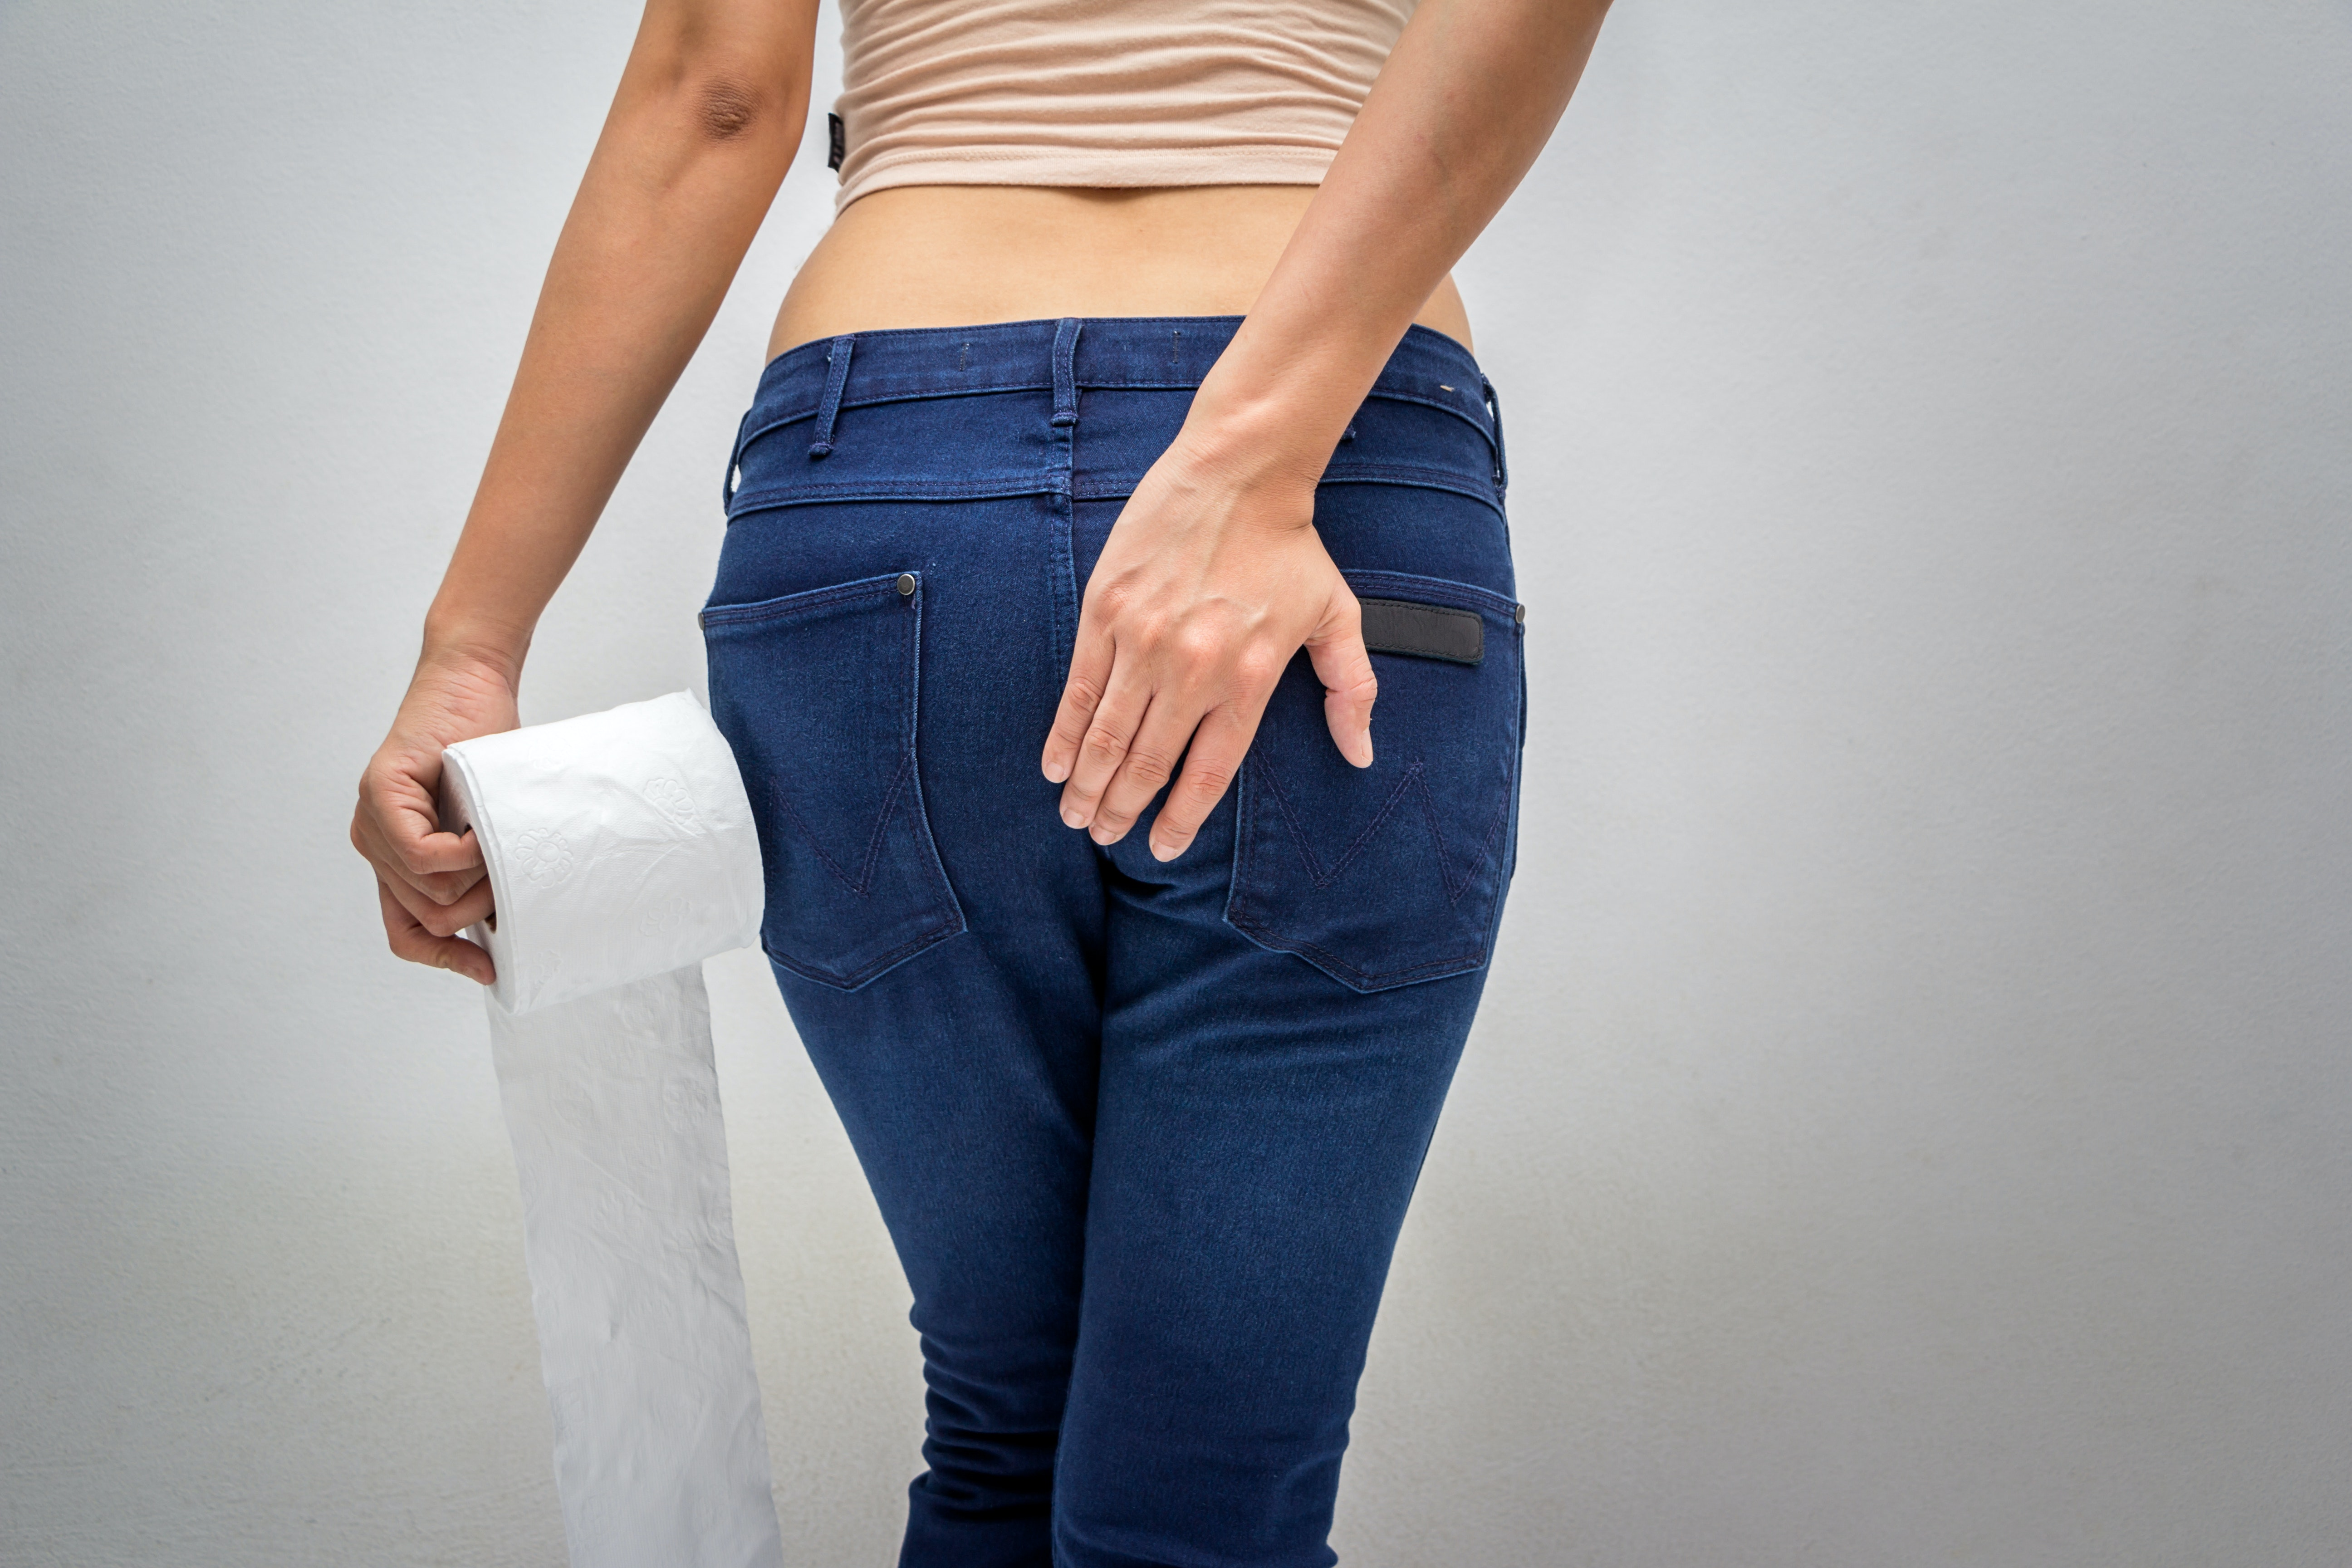 An image depicting a person suffering from painless rectal bleeding symptoms